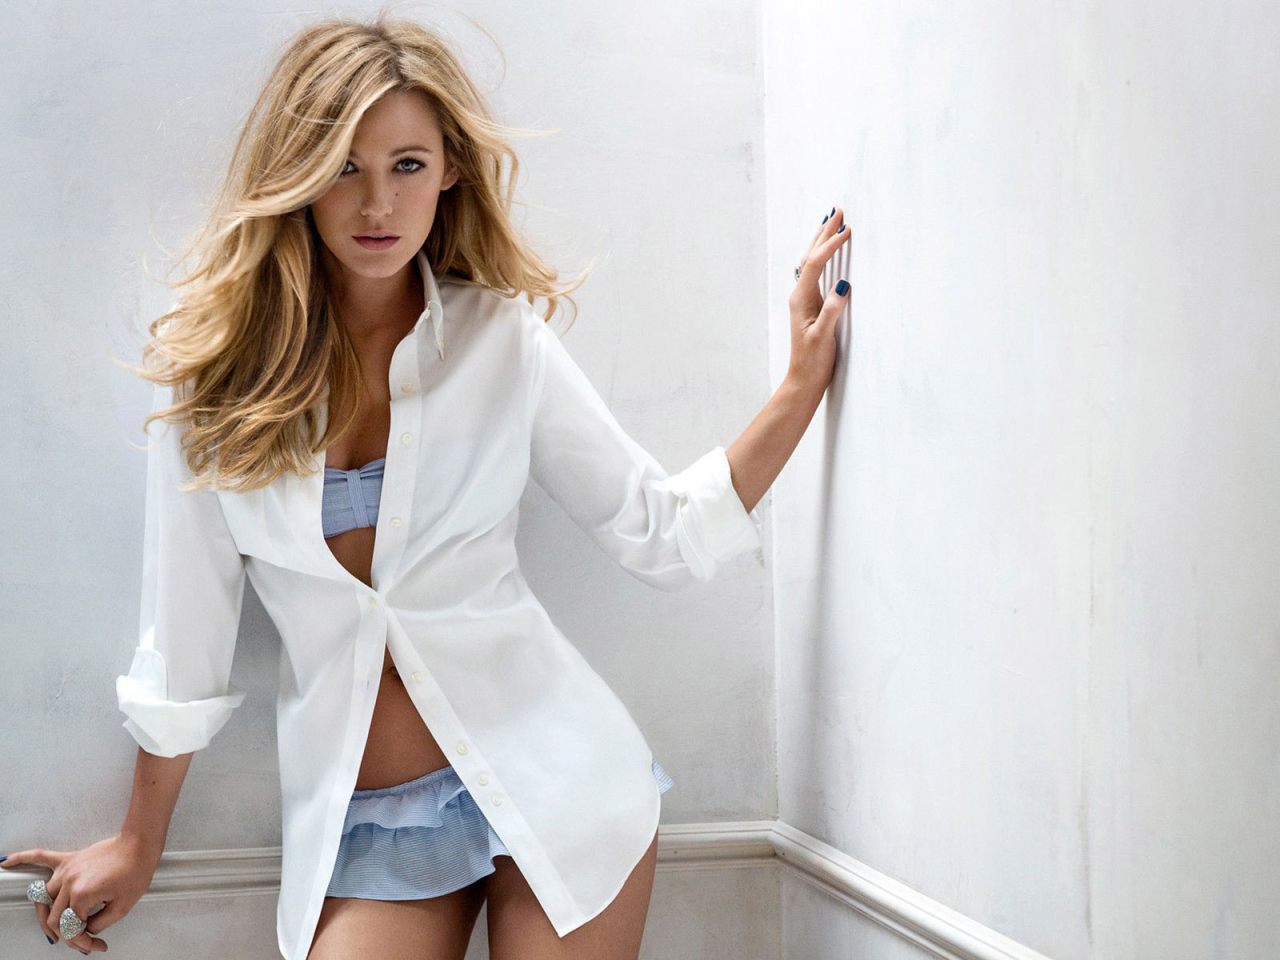 Blake Lively Damn Hot Photoshoot Full HD Wallpaper